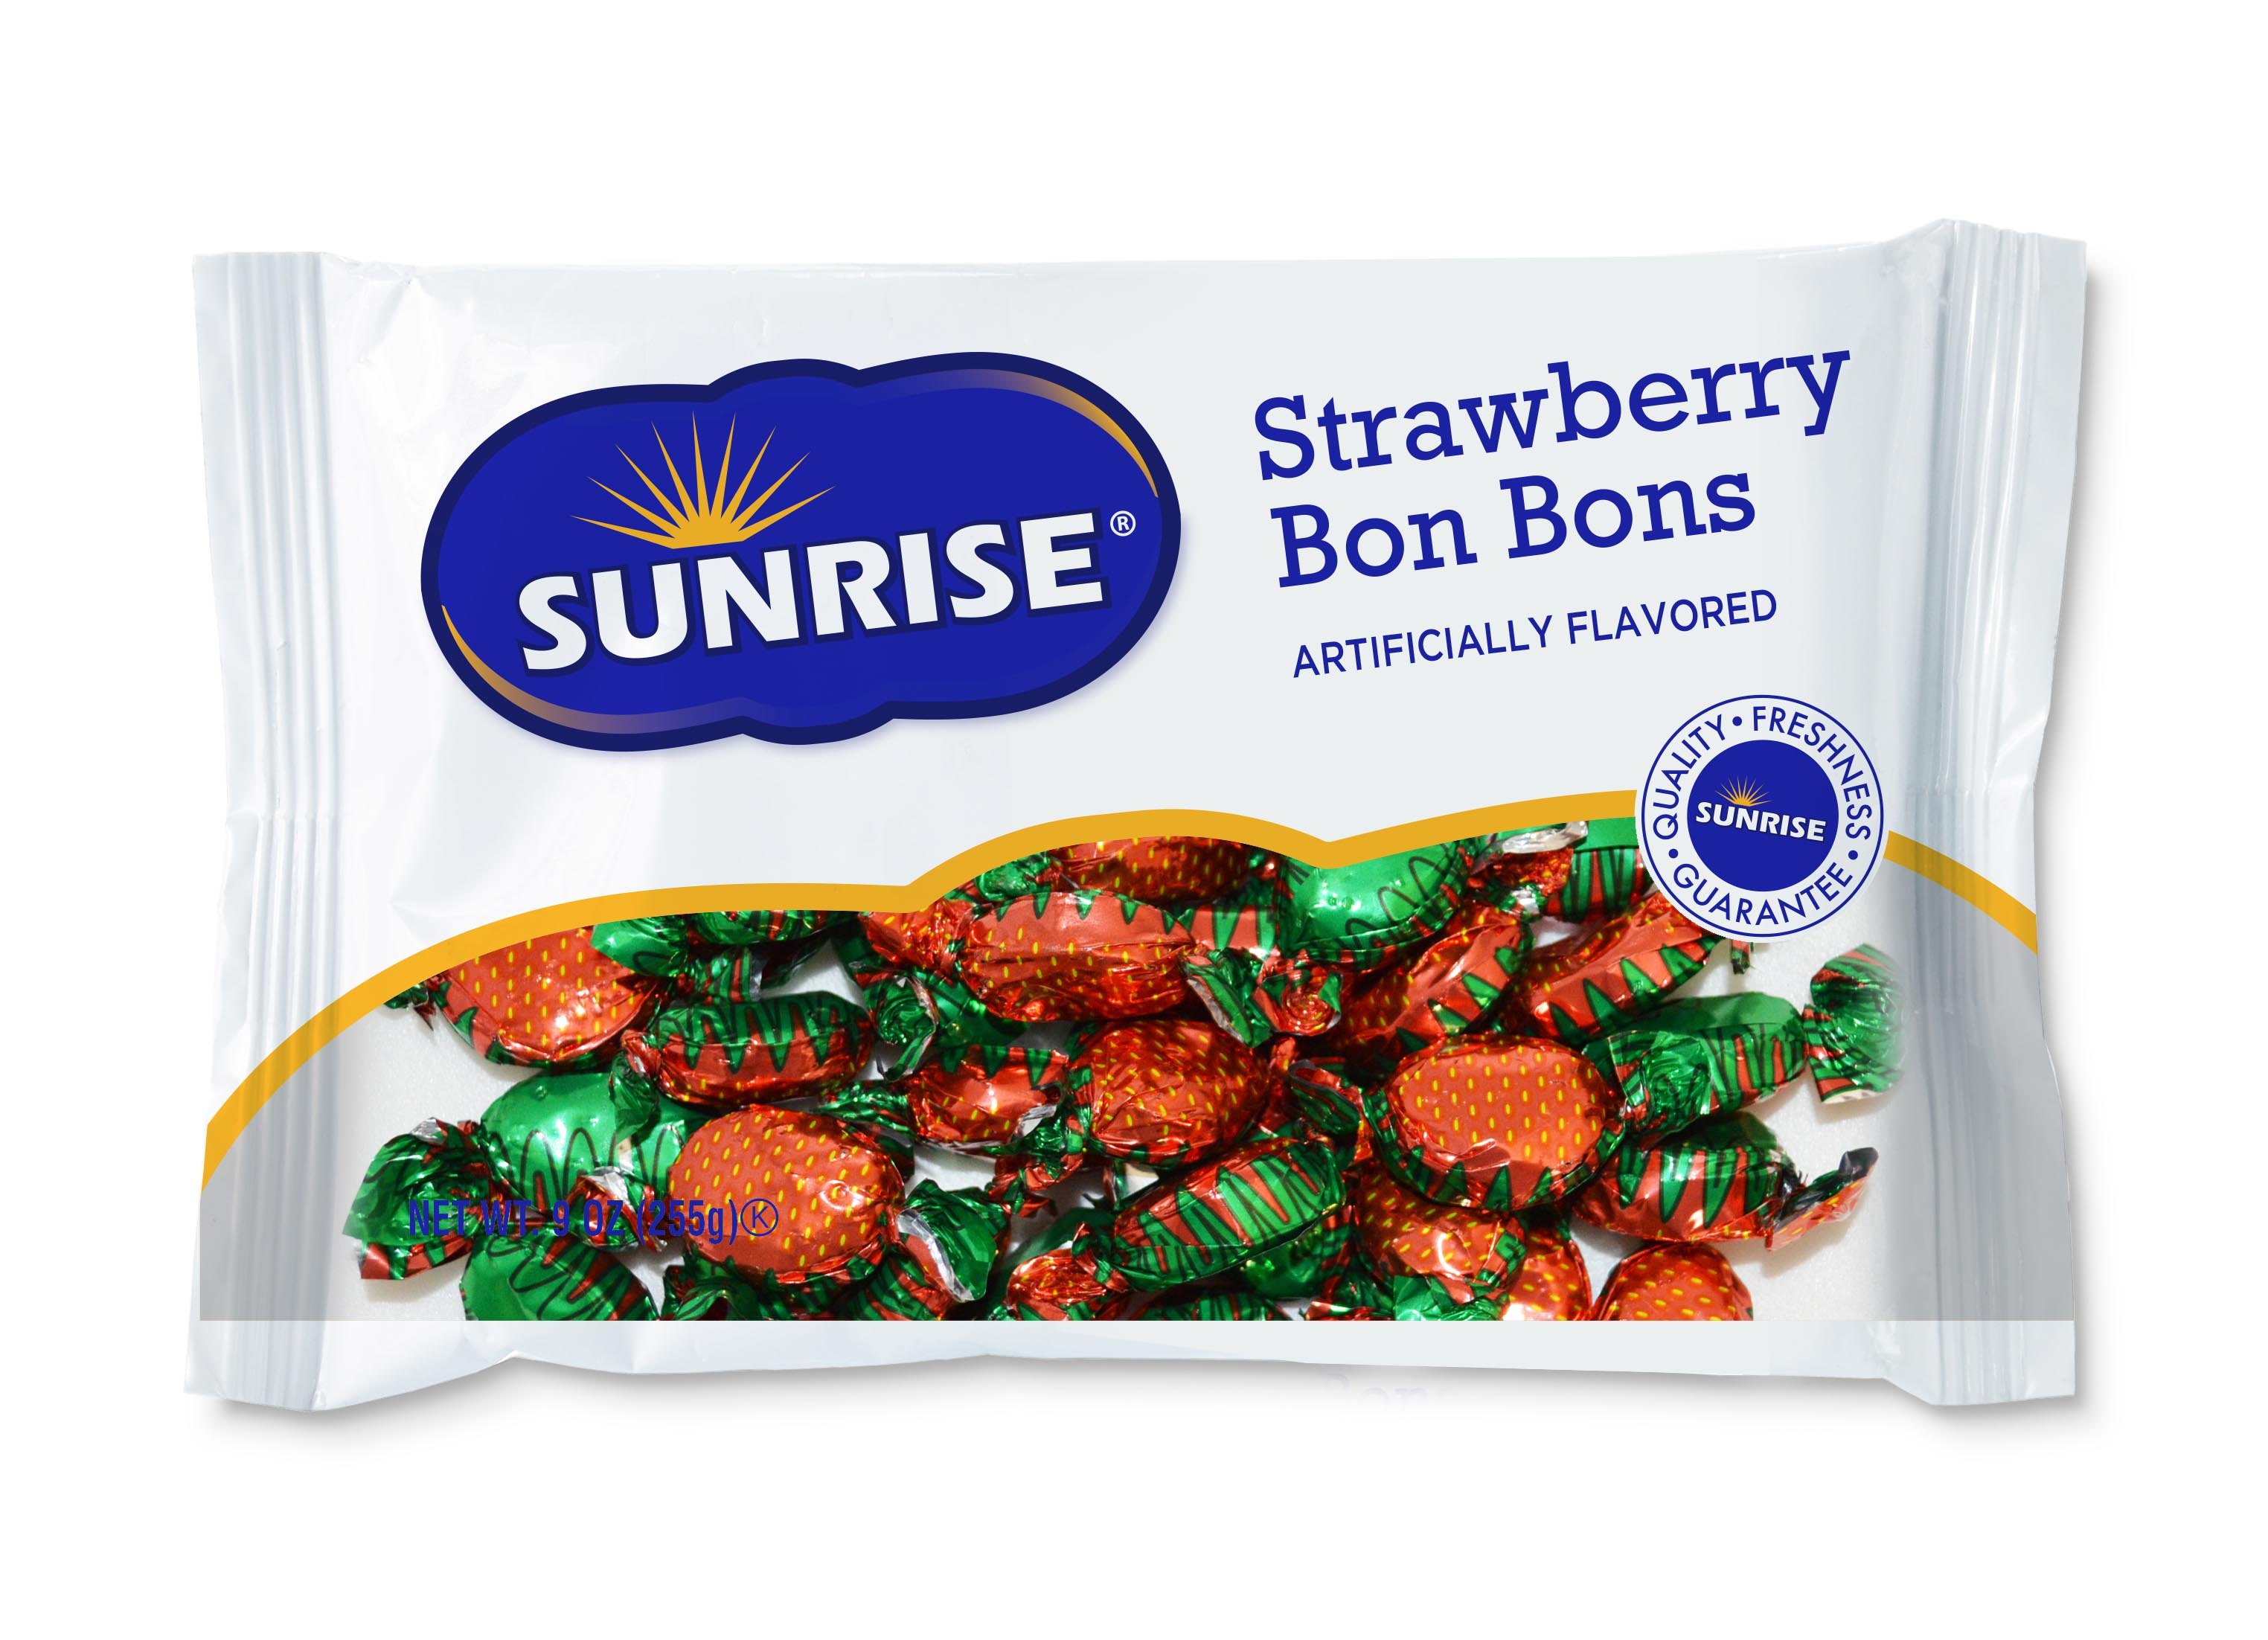 Bag of Strawberry Bon Bons